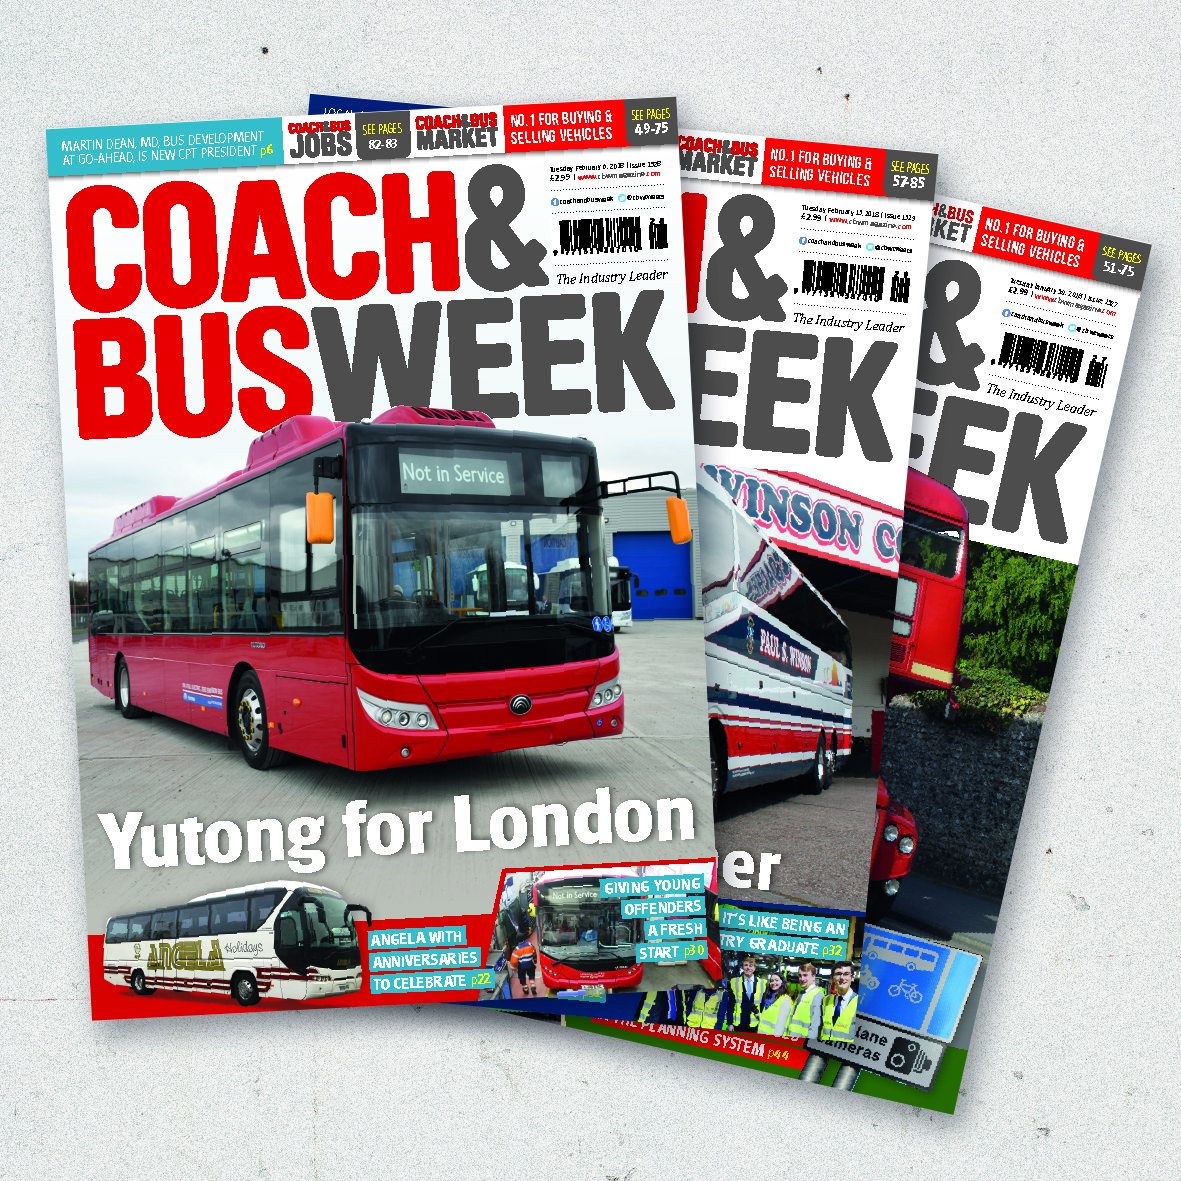 Coach & Bus Week Covers